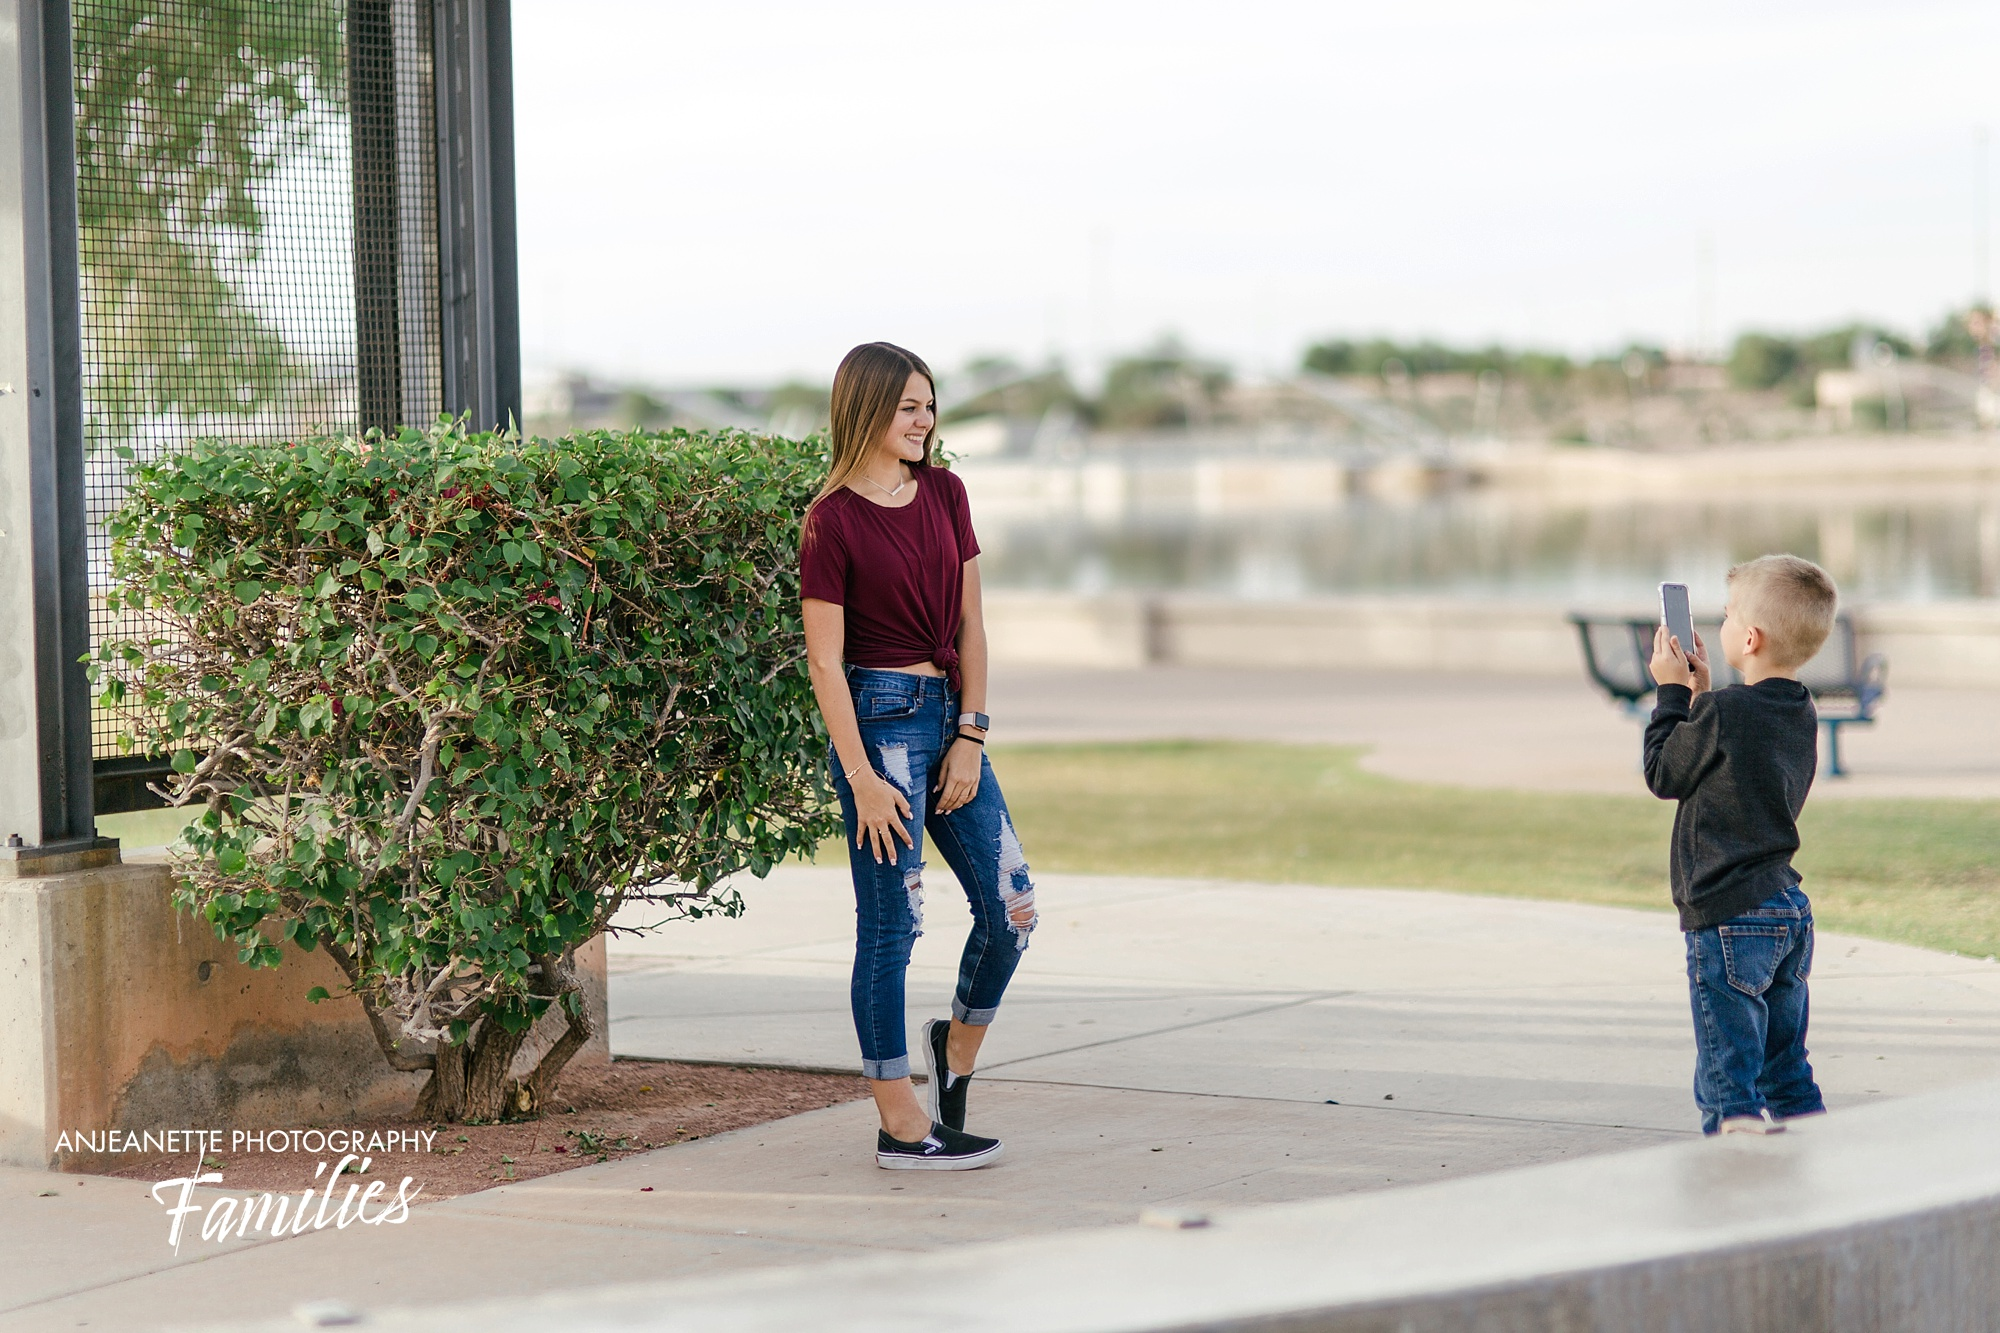 phoenix-senior- picture-photographer-anthem-arizona-high-school-anjeanette-photography_0782.jpg